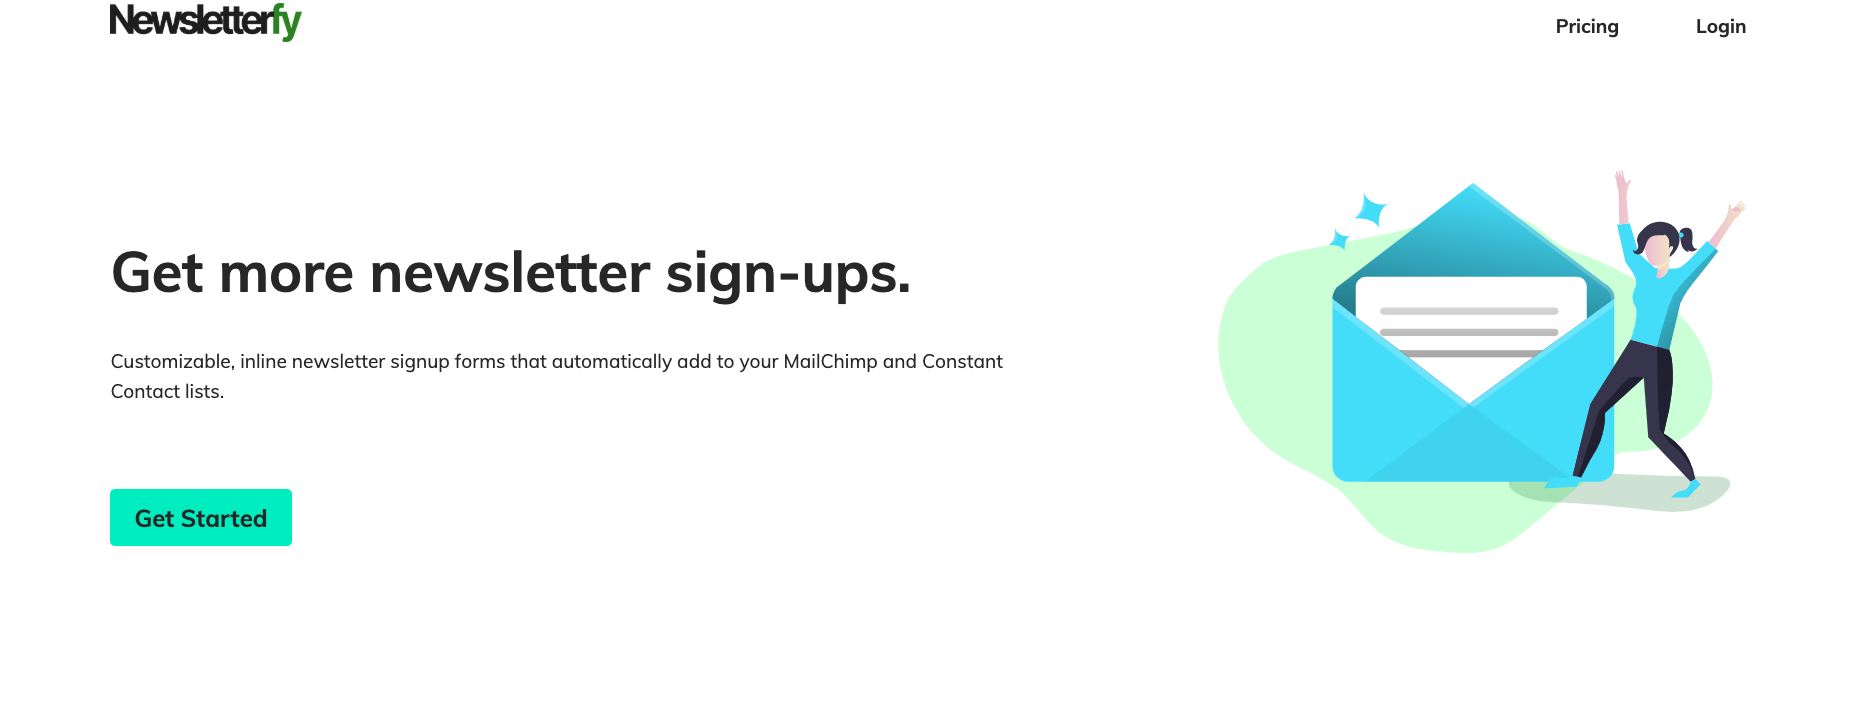 Landing page for Newsletterfy